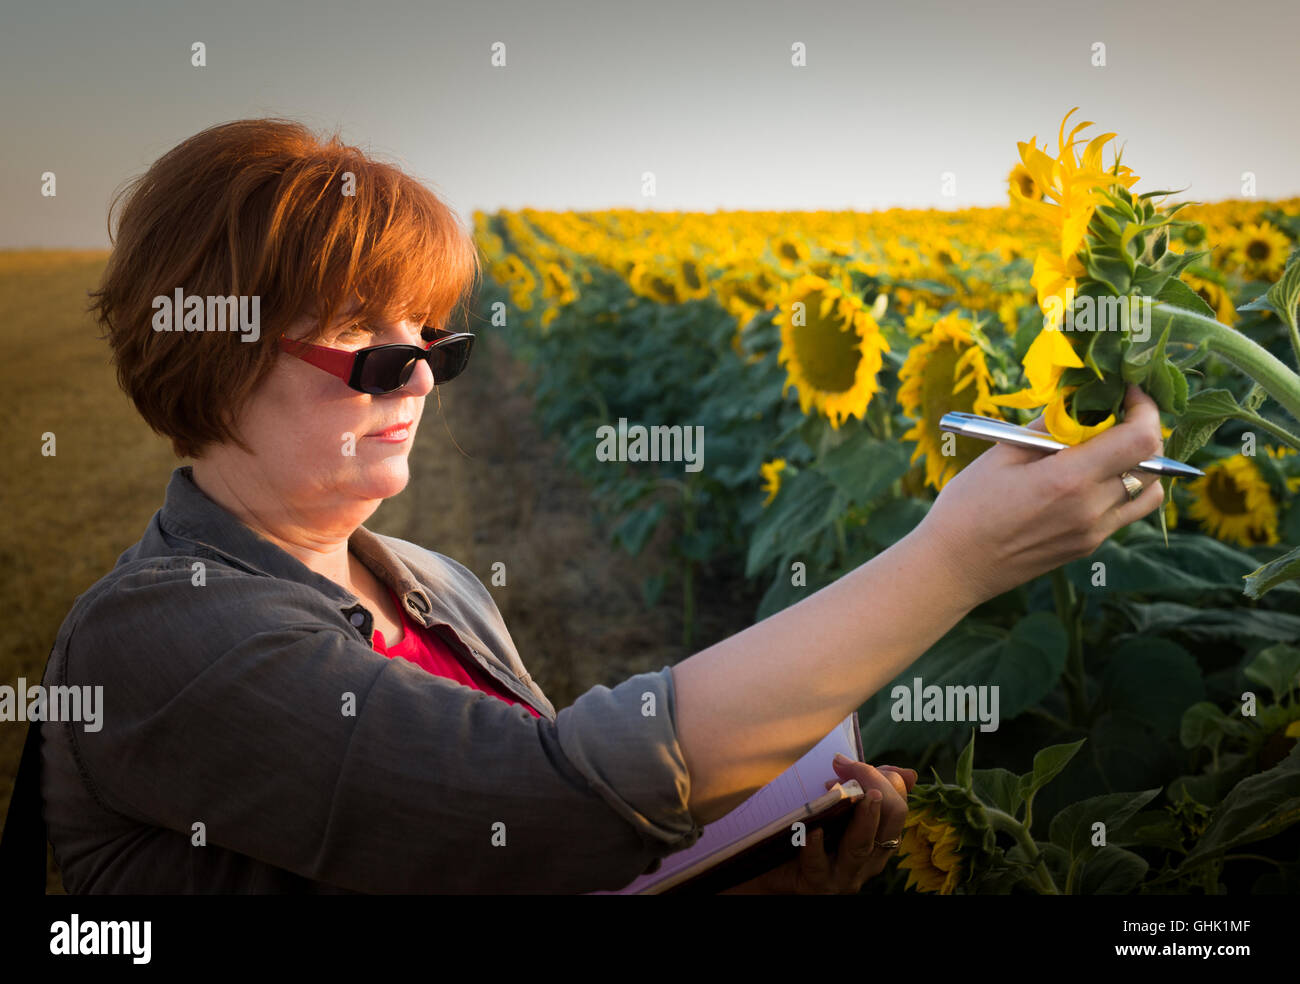 Agriculture, female farmer or agronomist in sunflower field - Stock Image